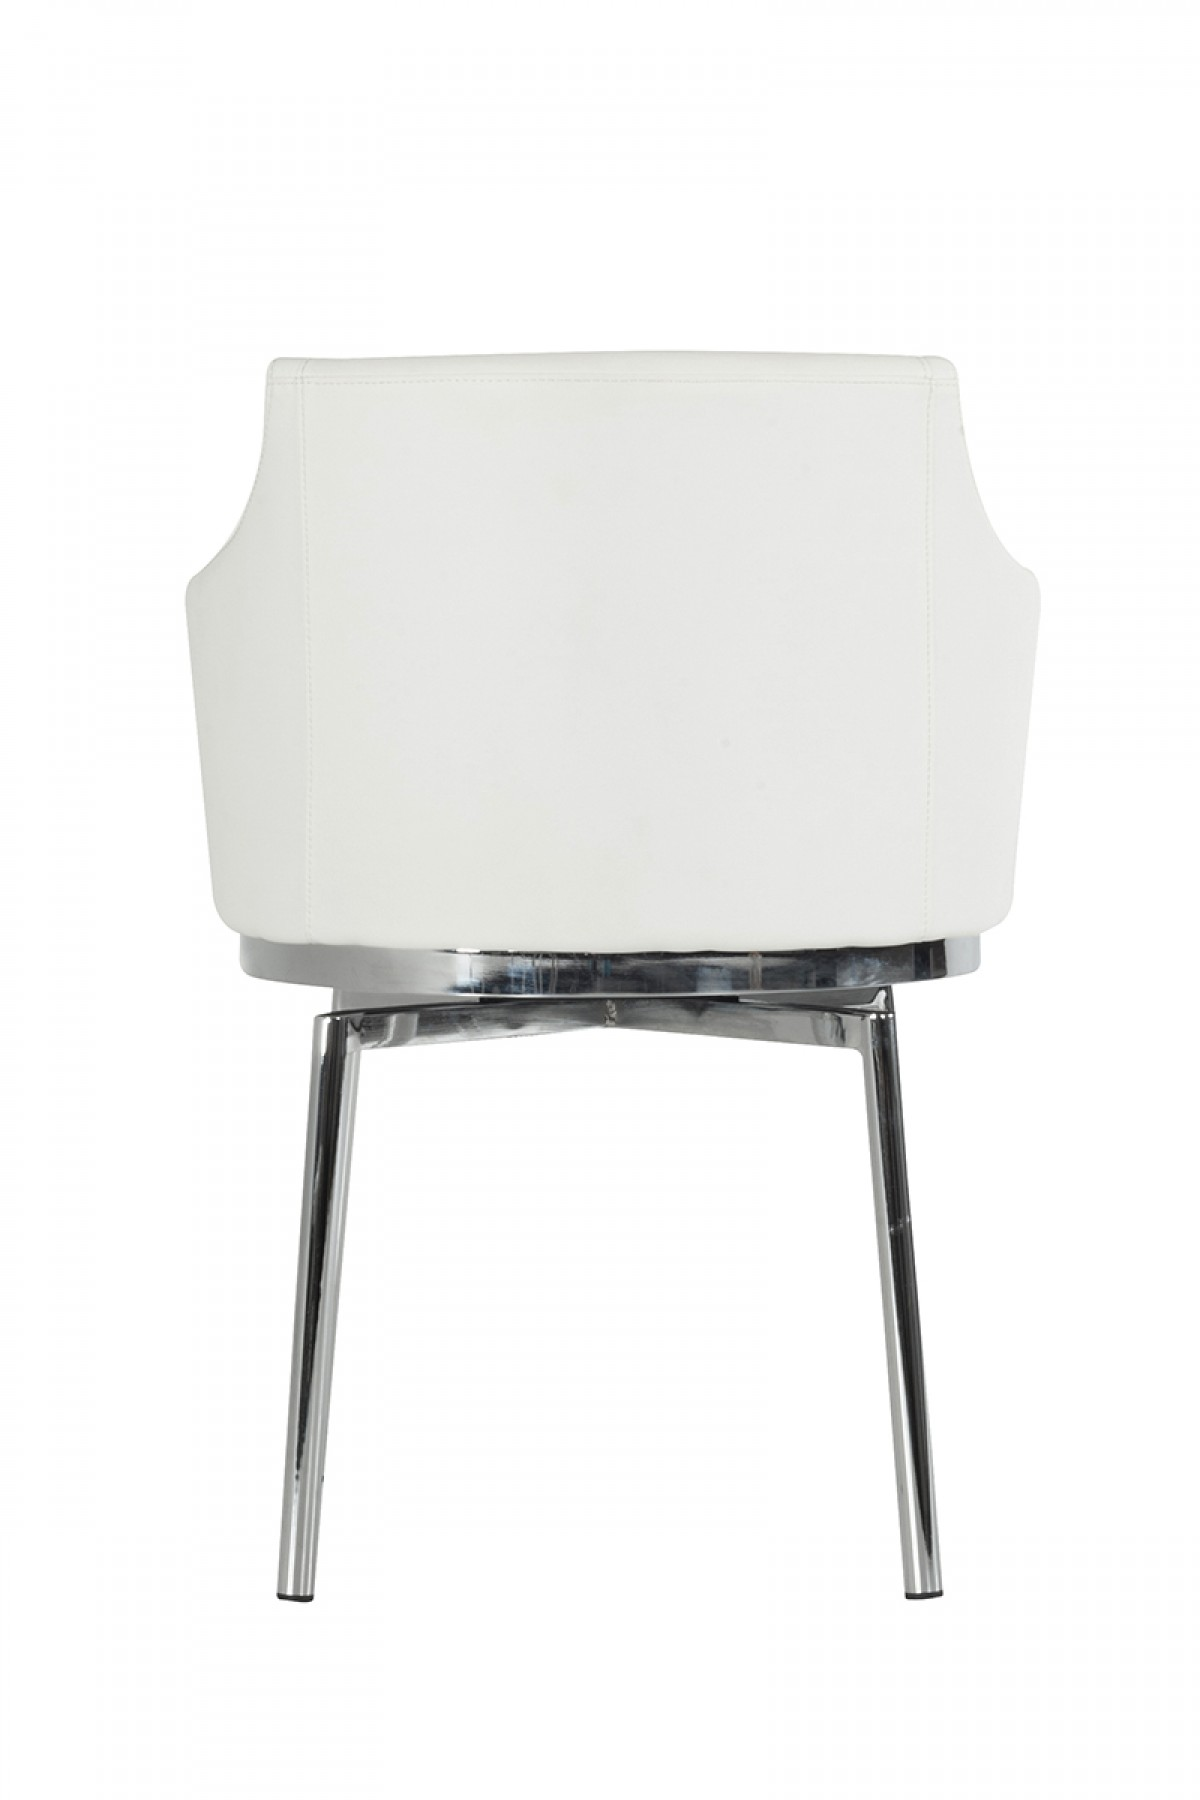 new low priced cynthia white swivel dining chair at advanced interior designs